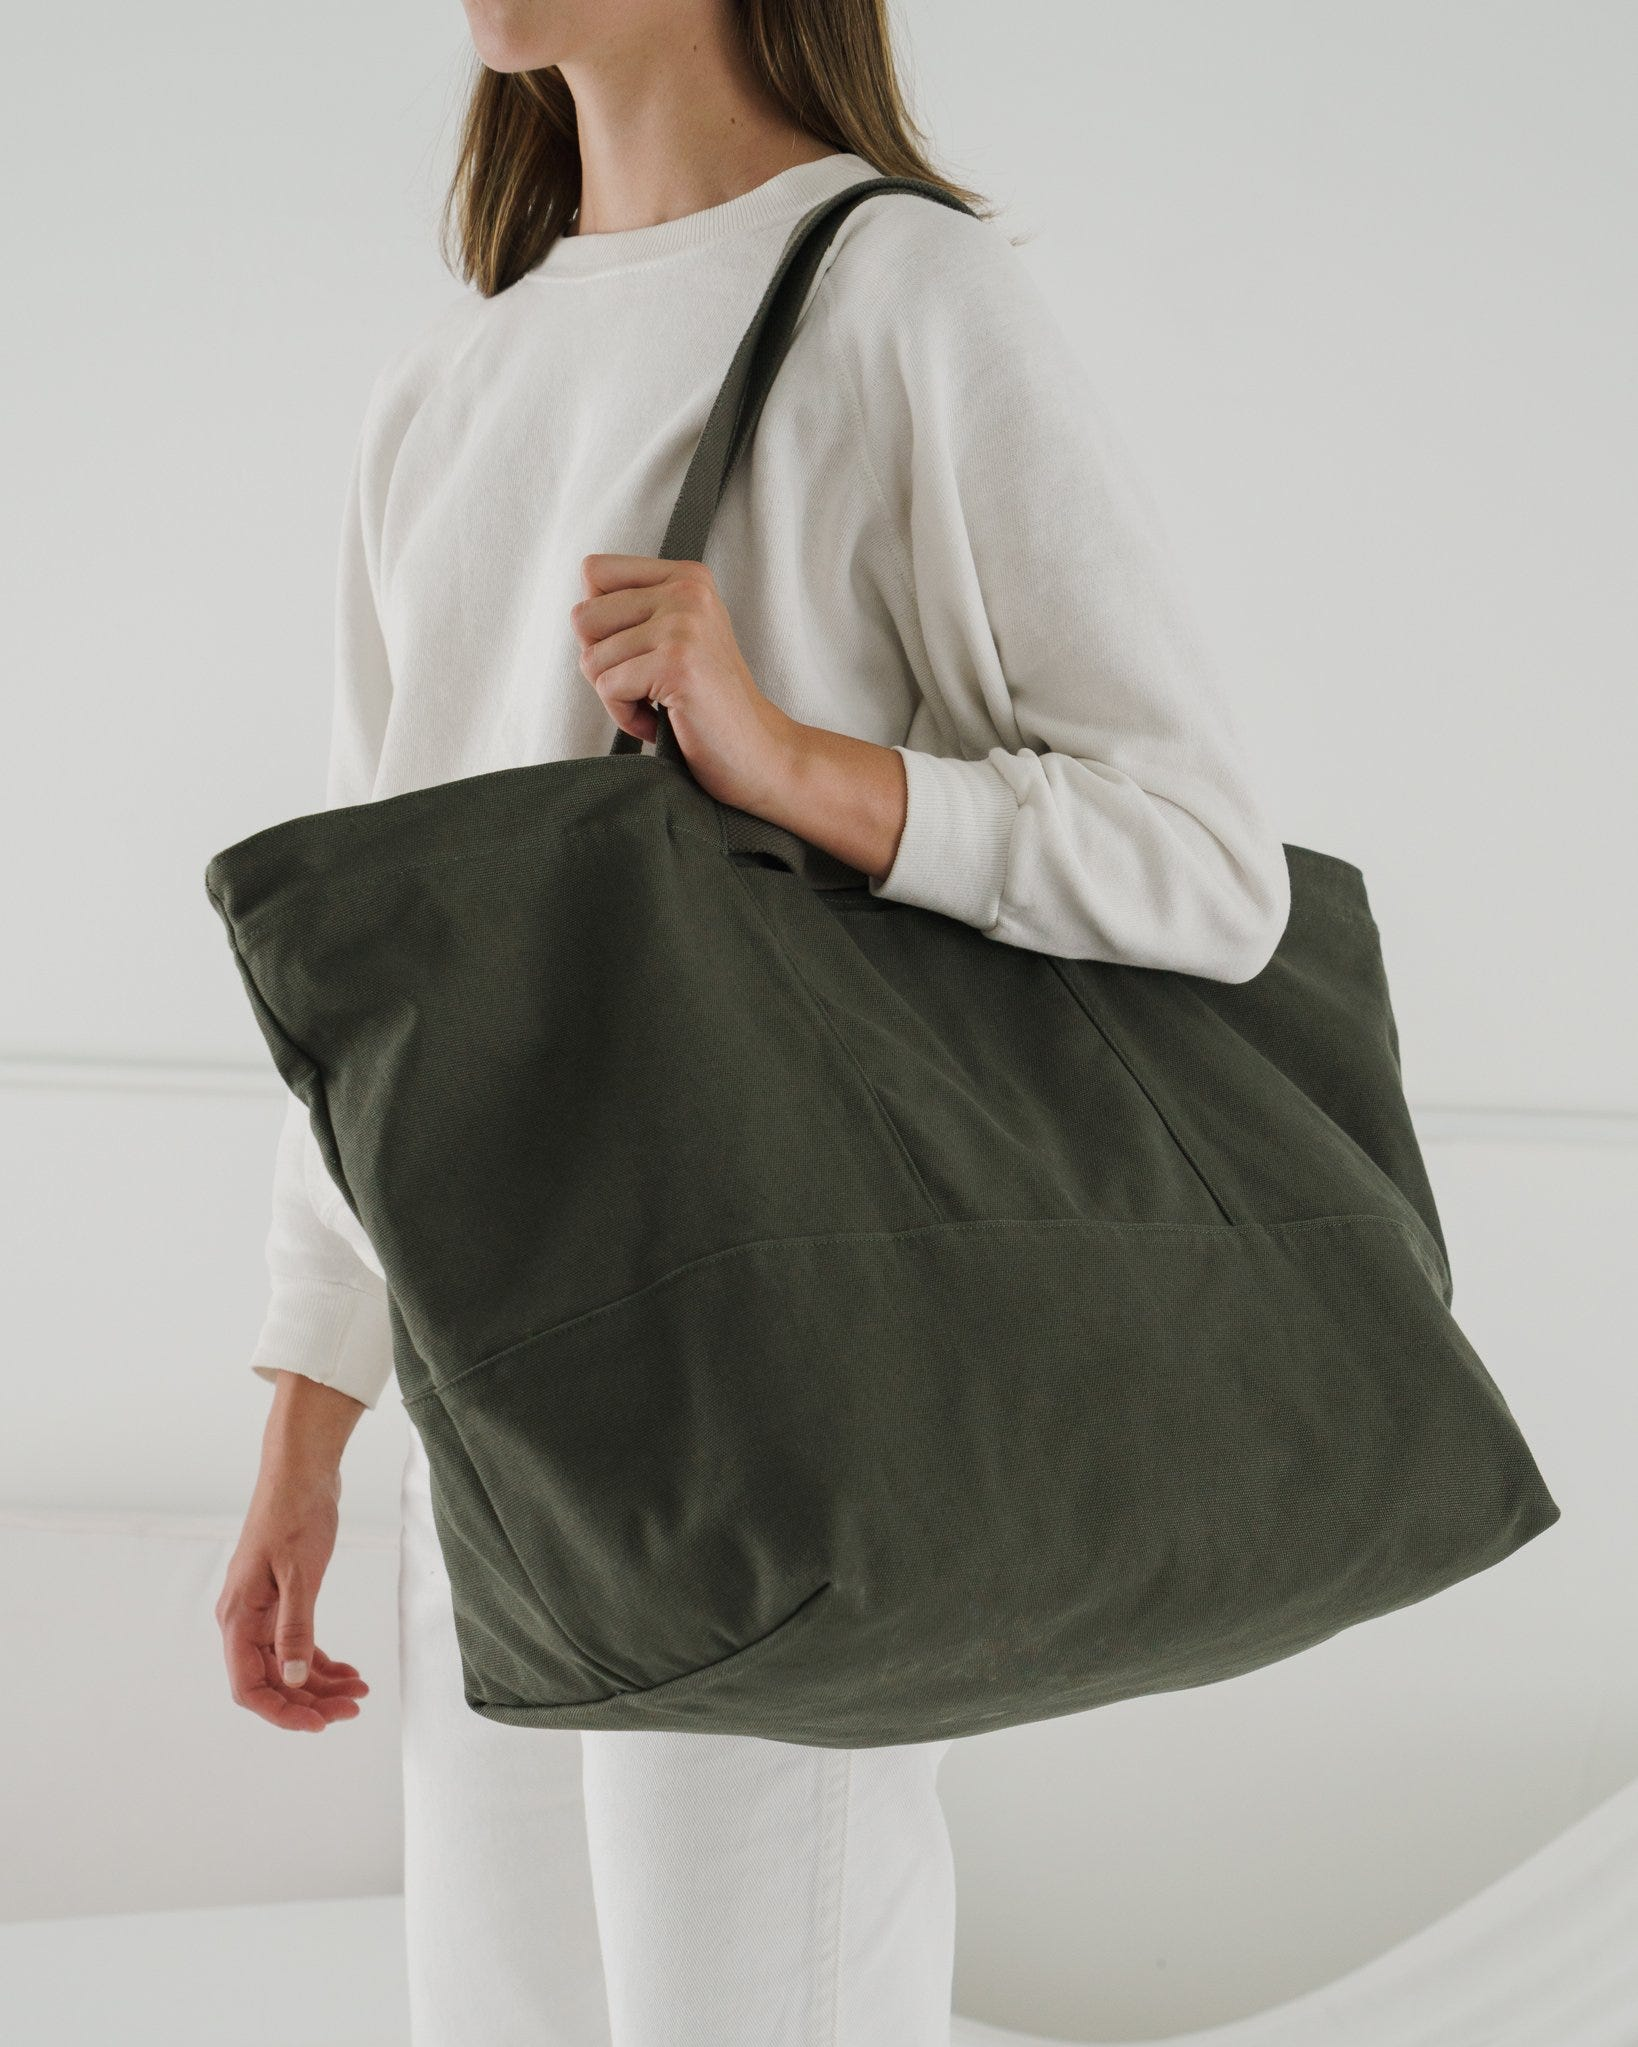 b30104538ffa Best Weekender Bags For Women To Travel In Style 2019